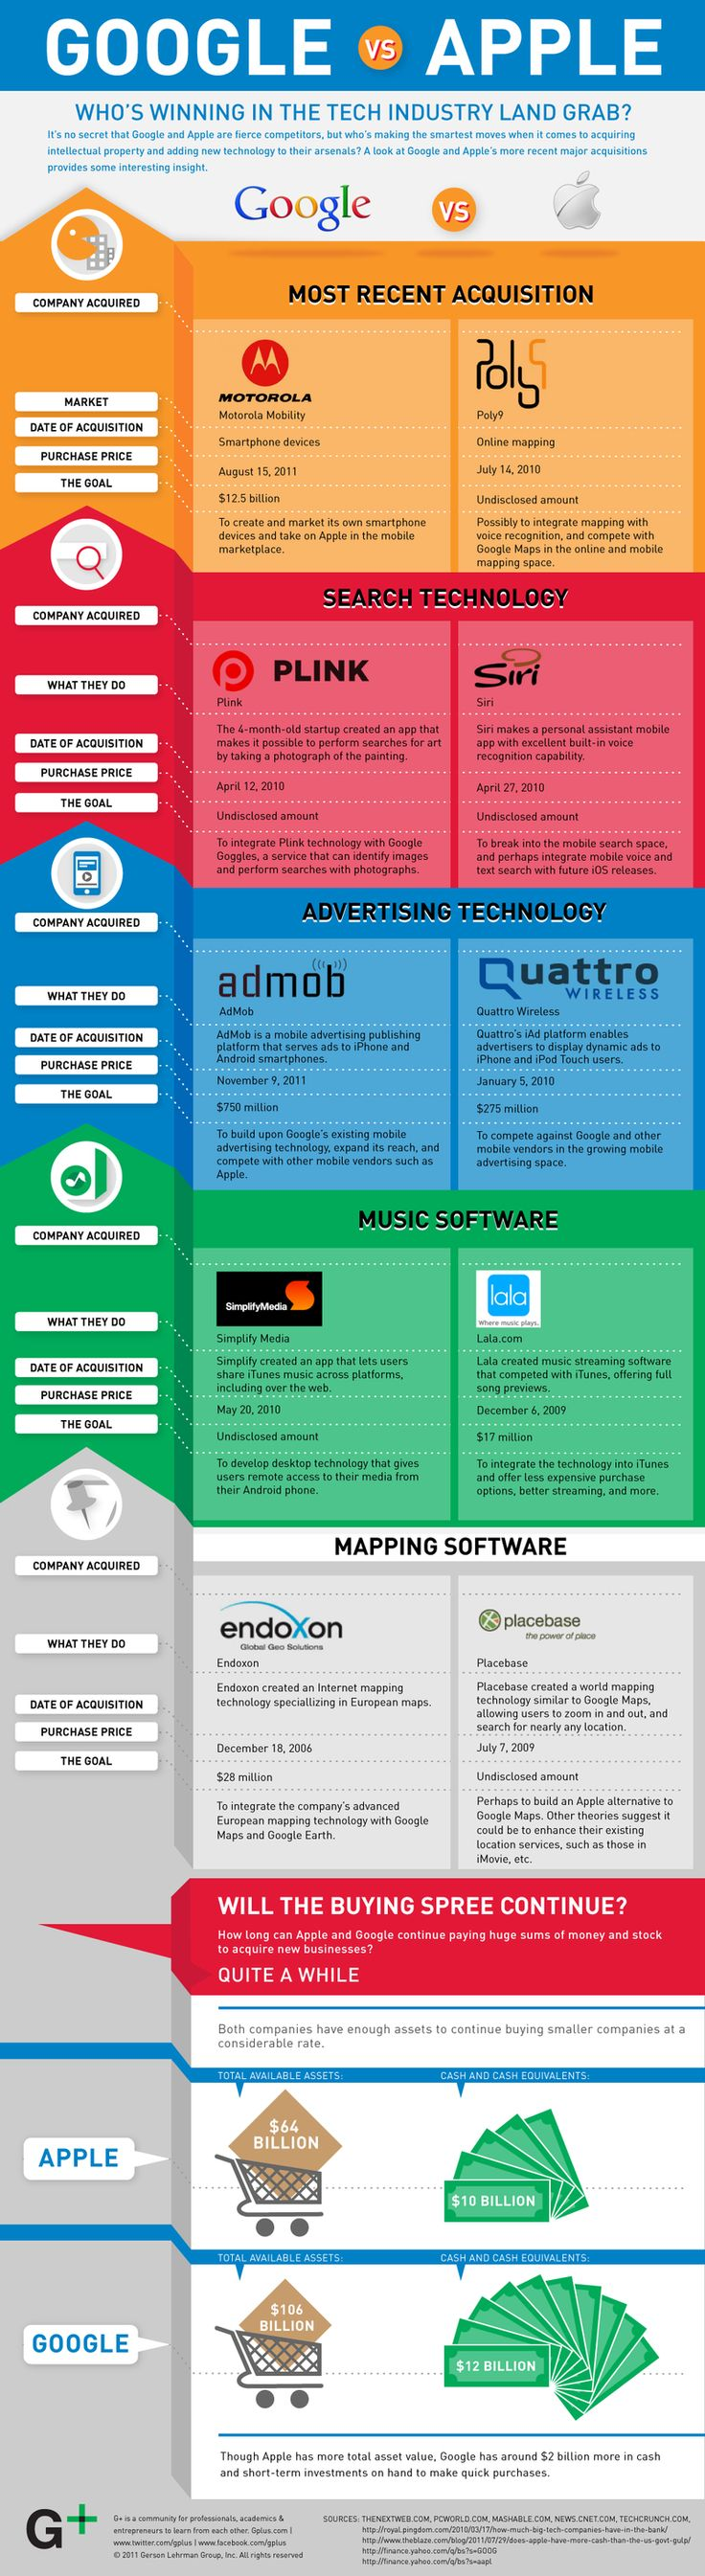 How Do Google And Apple Compare In Intellectual Property And New Technology Acquisition? #infographic